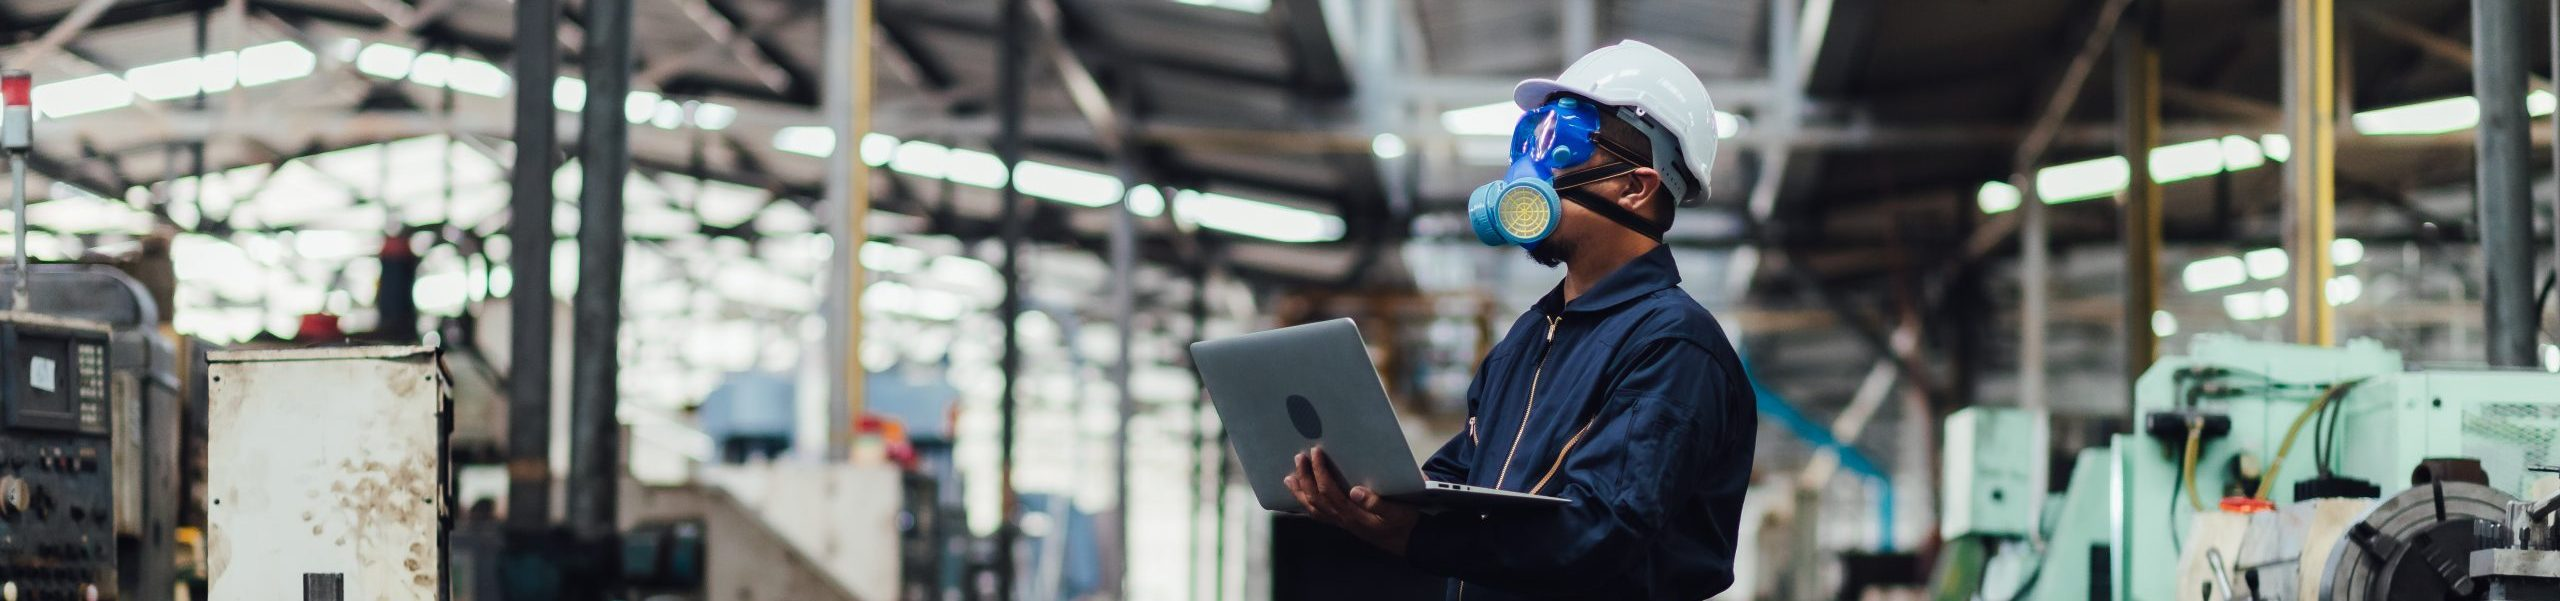 Officials from the Department of Hazardous substances control bureau is investigating the leak of a hazardous chemical in a chemical plant. Man with protective mask and computer laptops in factory